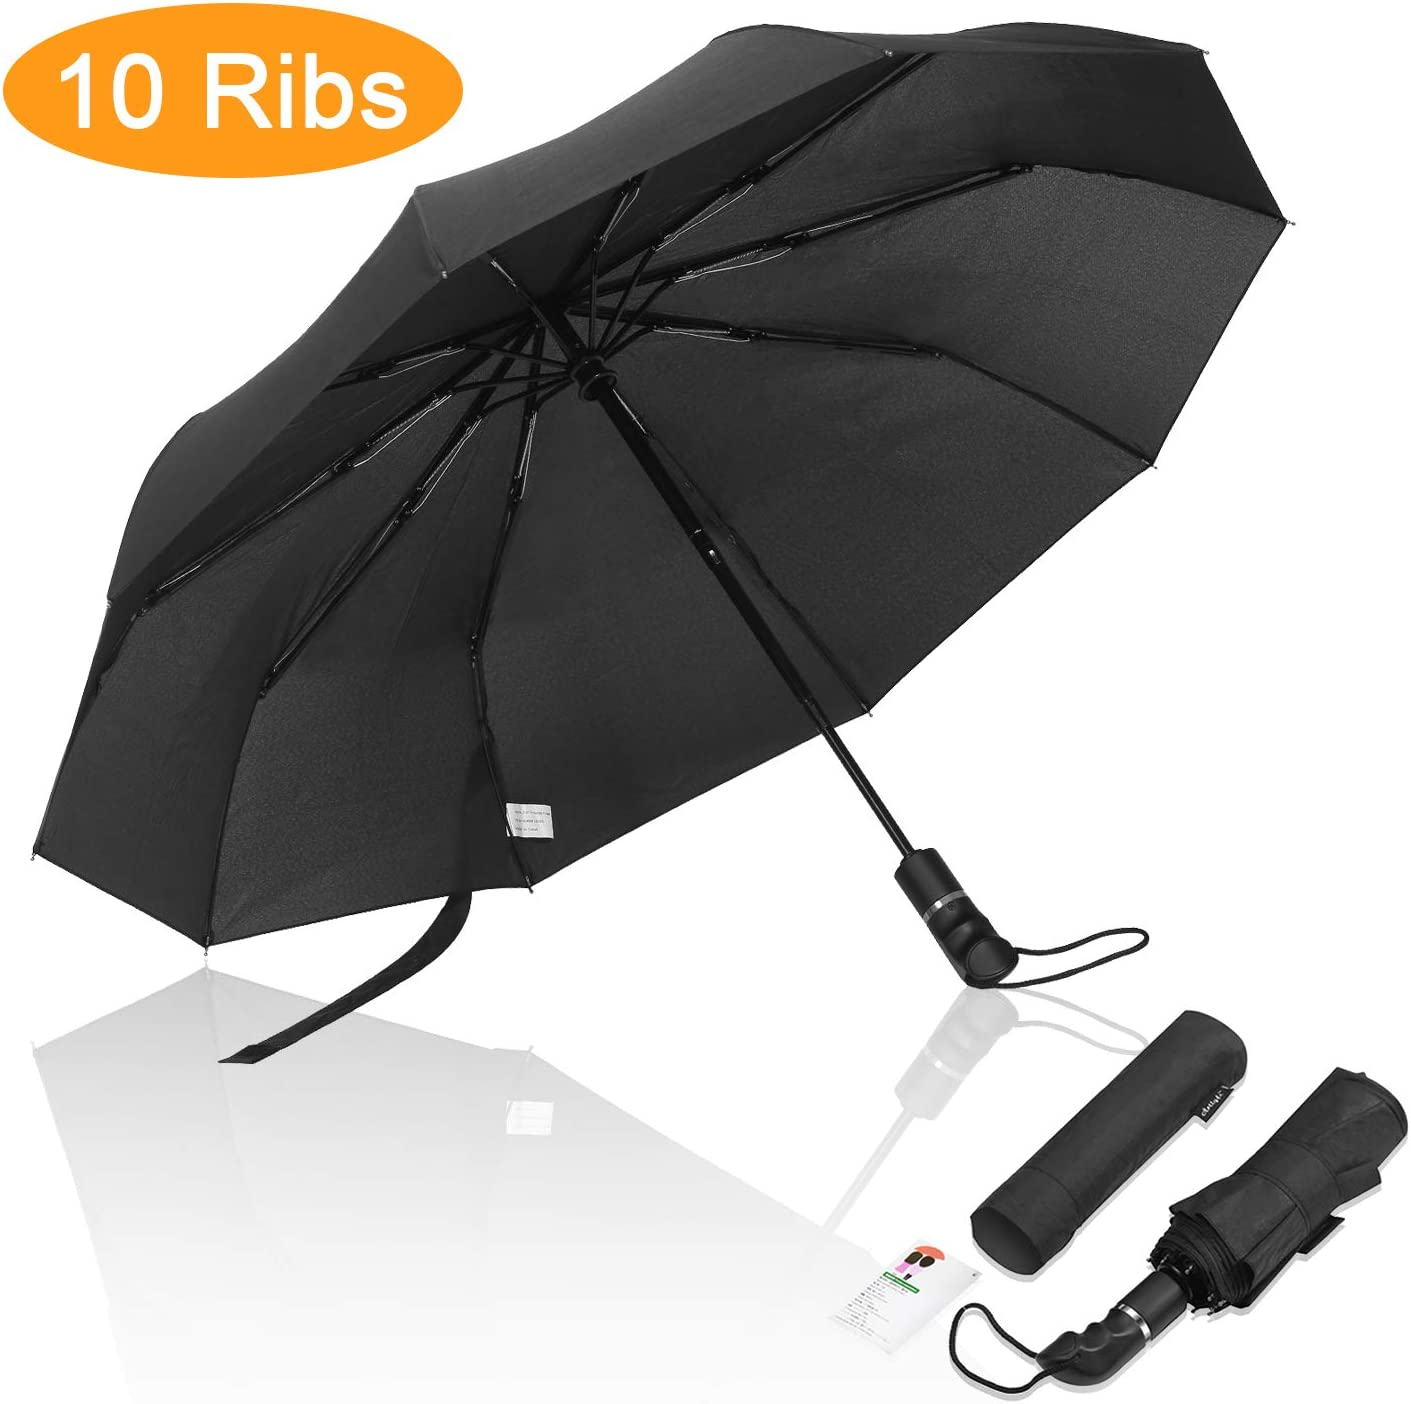 Auto Open and Close Folding Umbrella Windproof Black COLORGO Compact Travel Umbrella